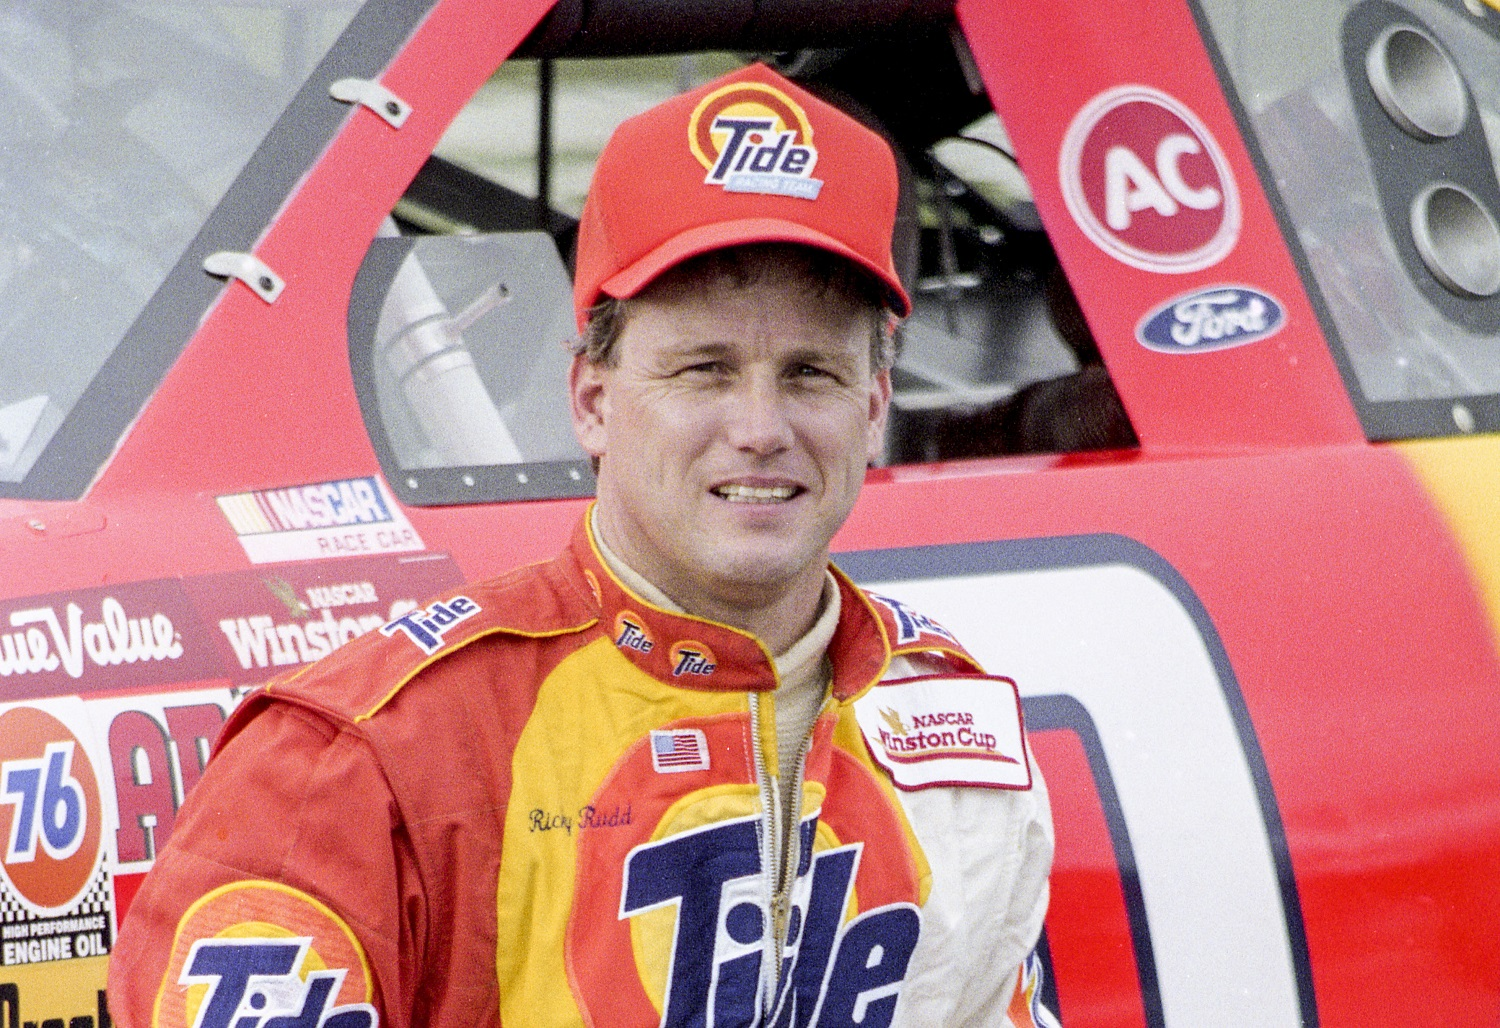 What Ricky Rudd Did in His NASCAR Debut Would Be Impossible Today